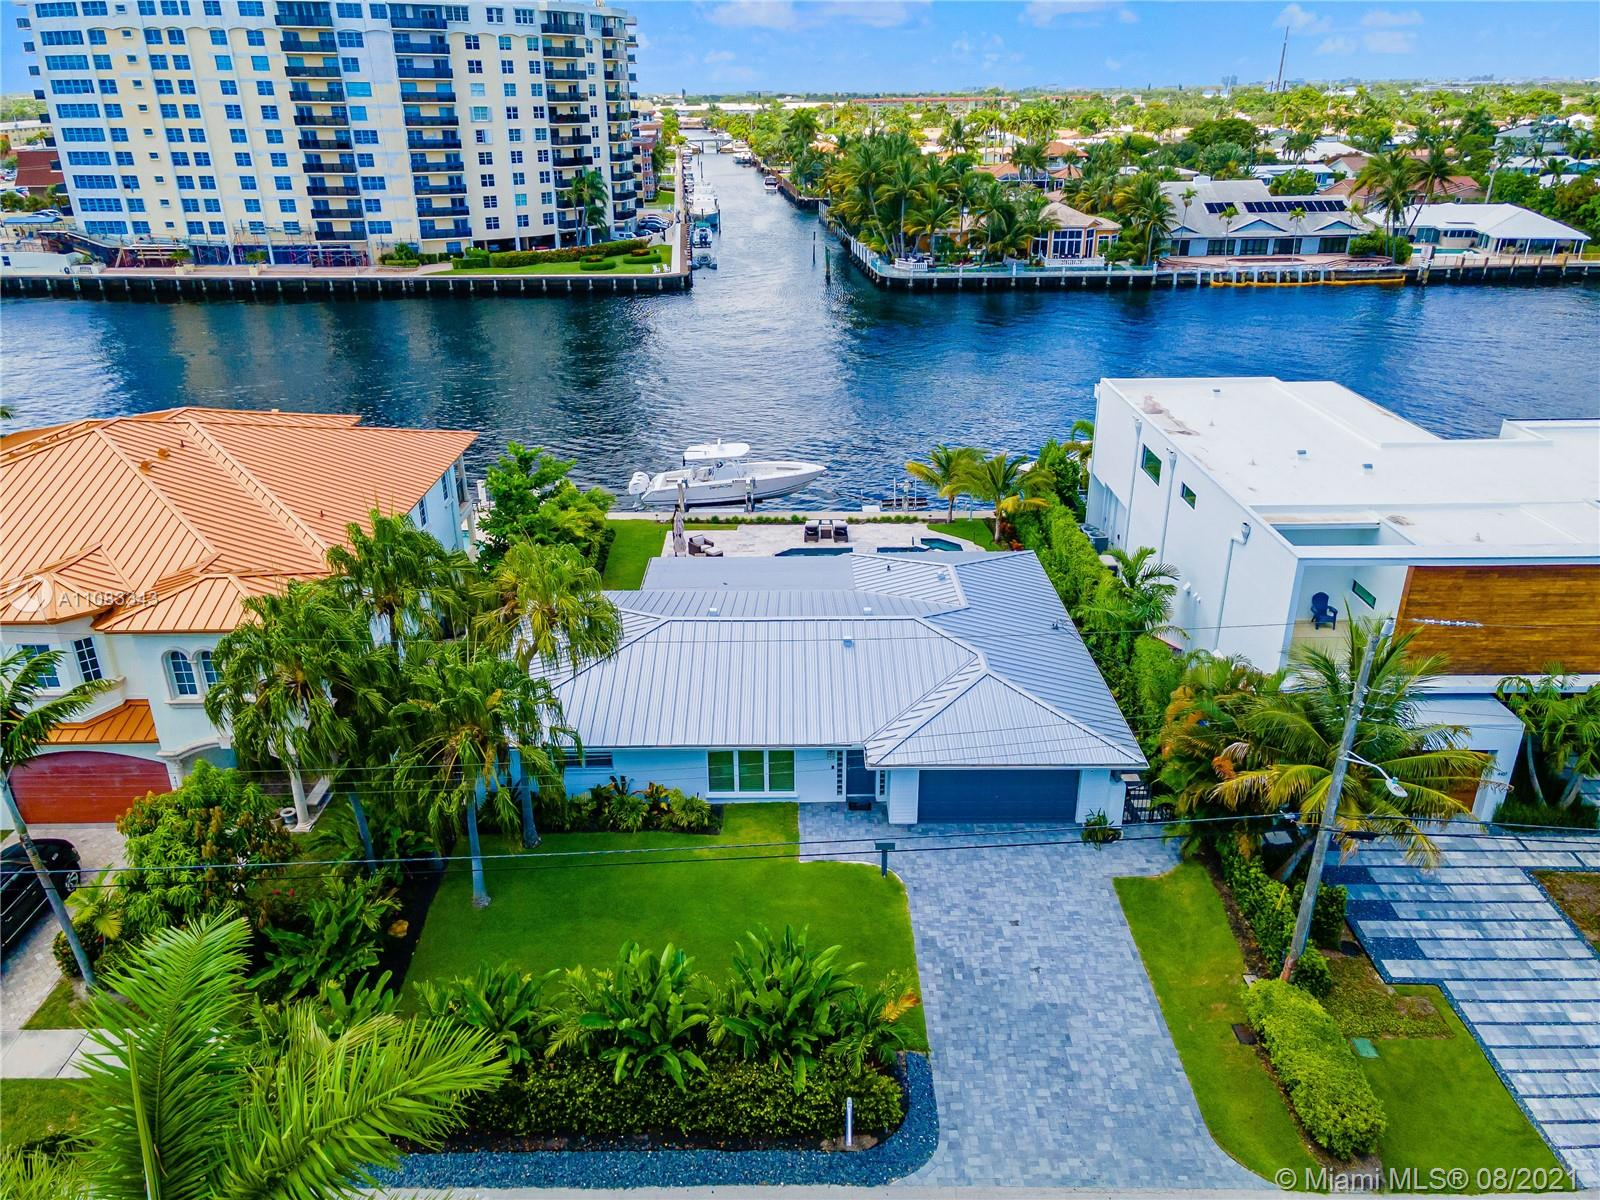 4431 Tradewinds Ave, Lauderdale By The Sea, Florida 33308